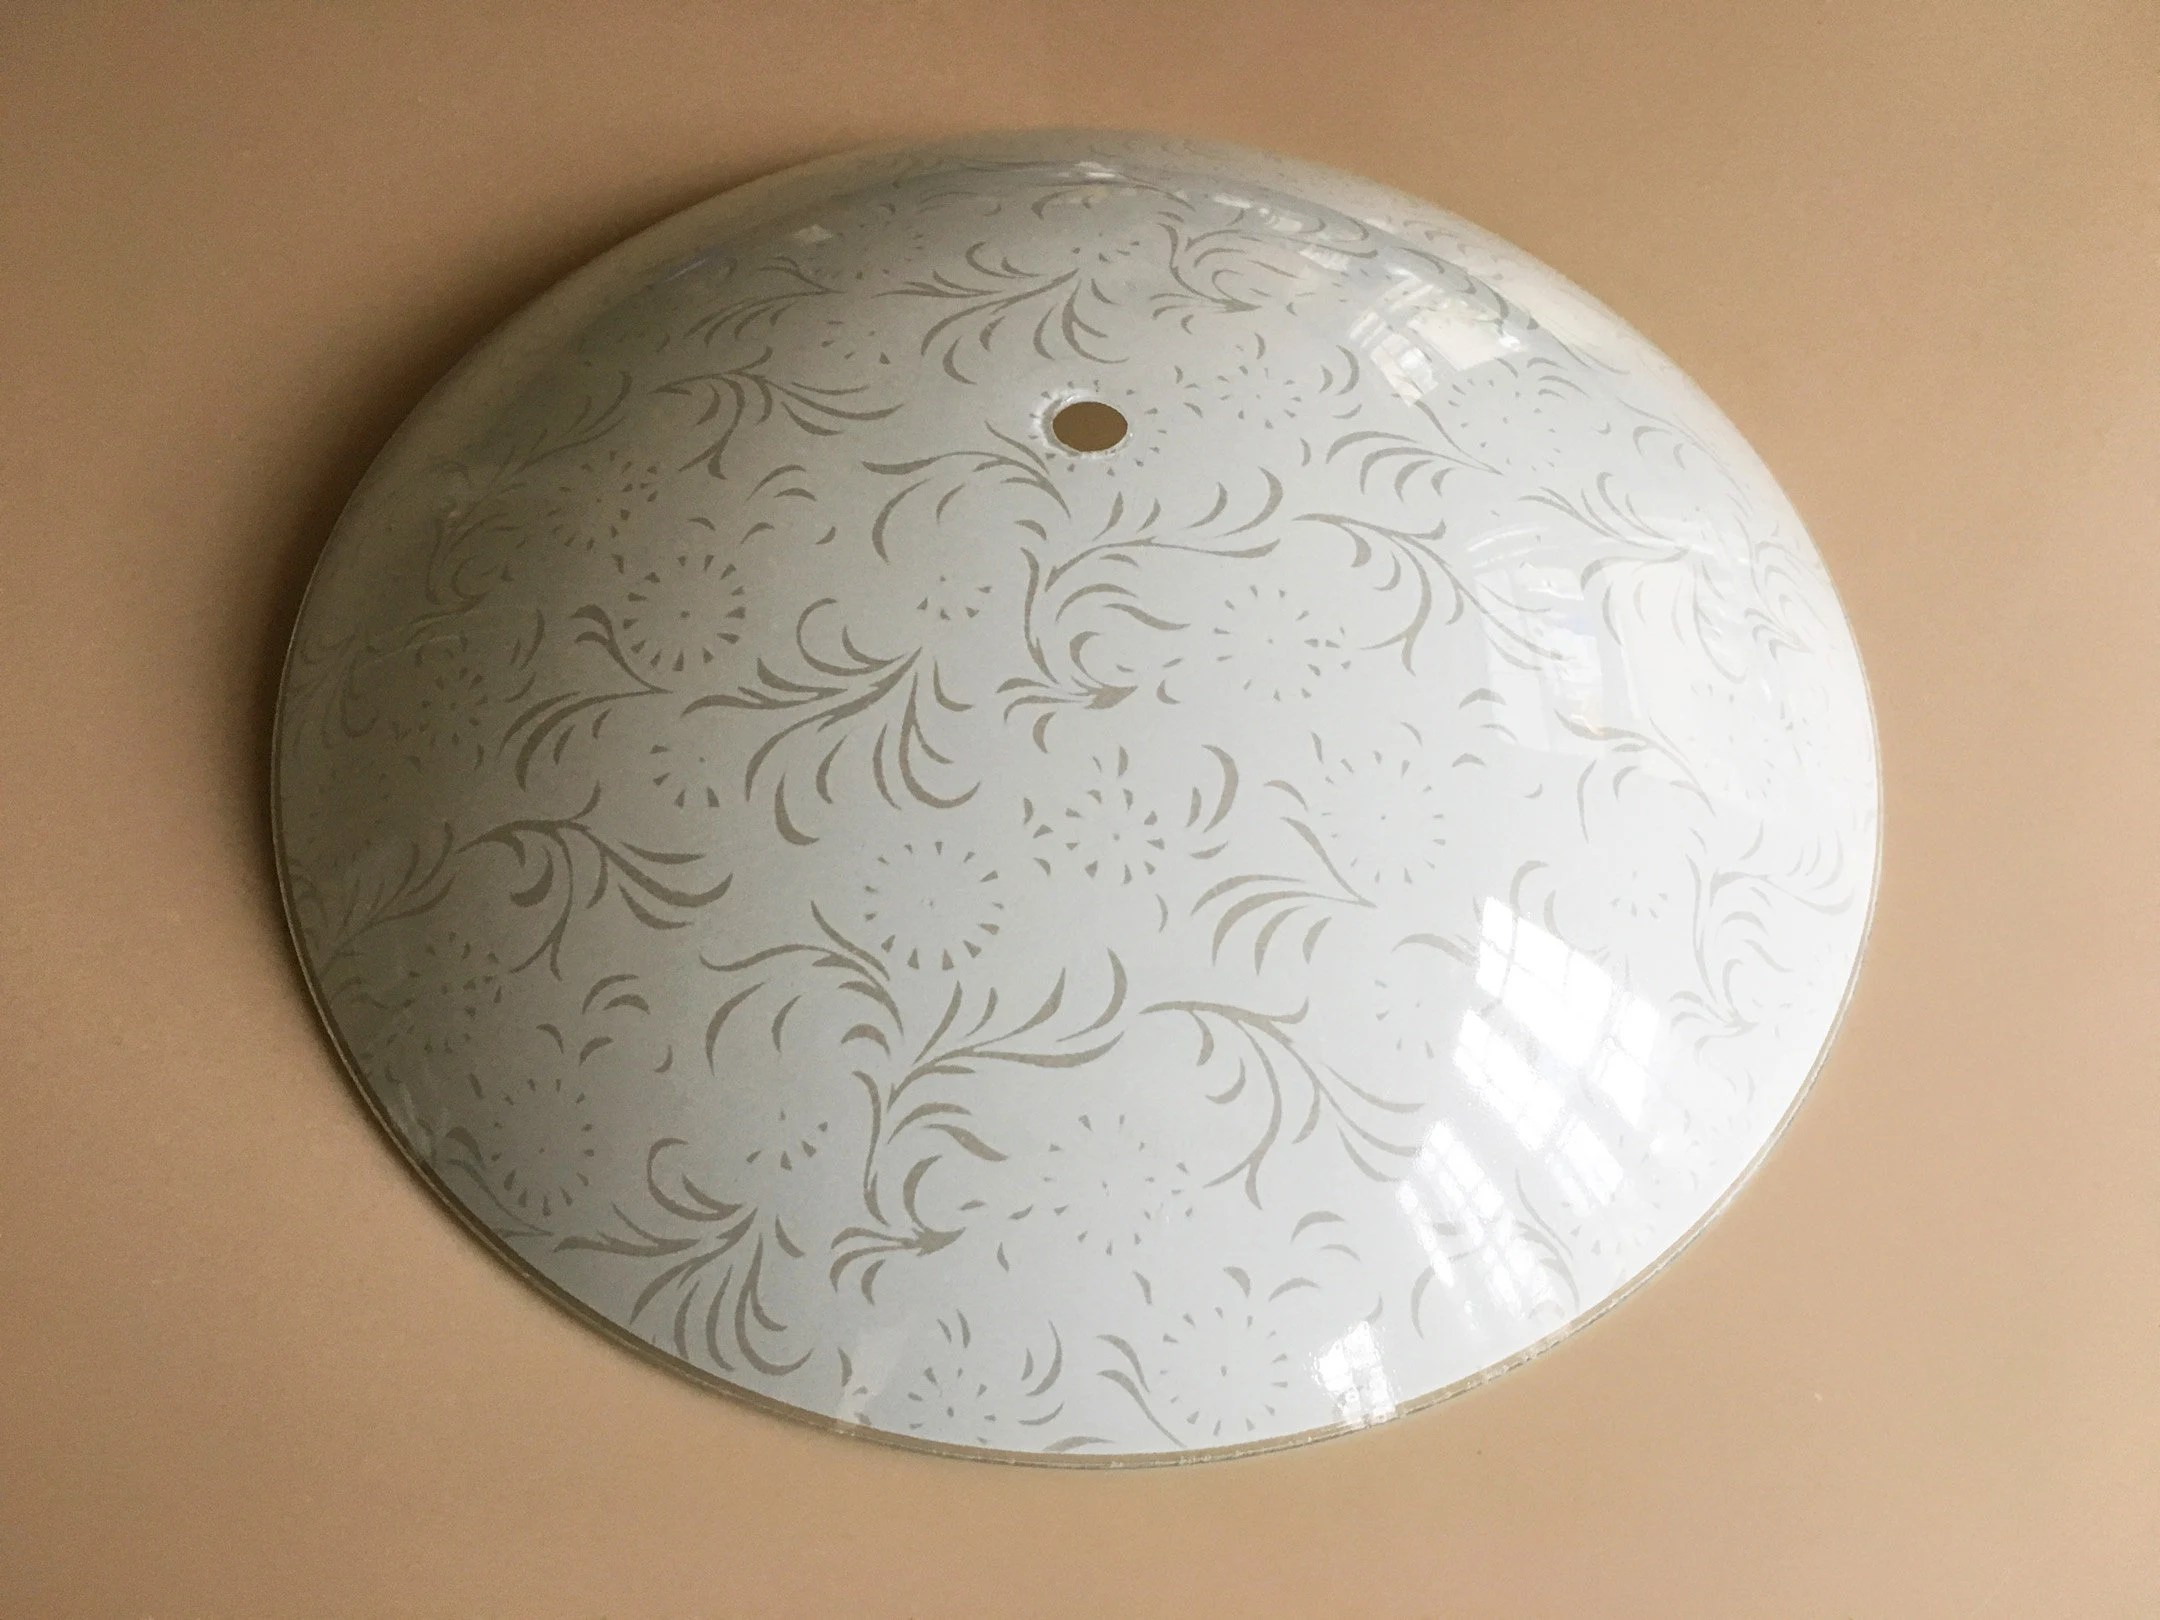 Ceiling Light Covers Ceiling Light Cover Glass Ceiling Shade Ceiling Fixture Light Fixture Vintage Light Shade Frosted Glass Shade Mid Century Light Fixture Old